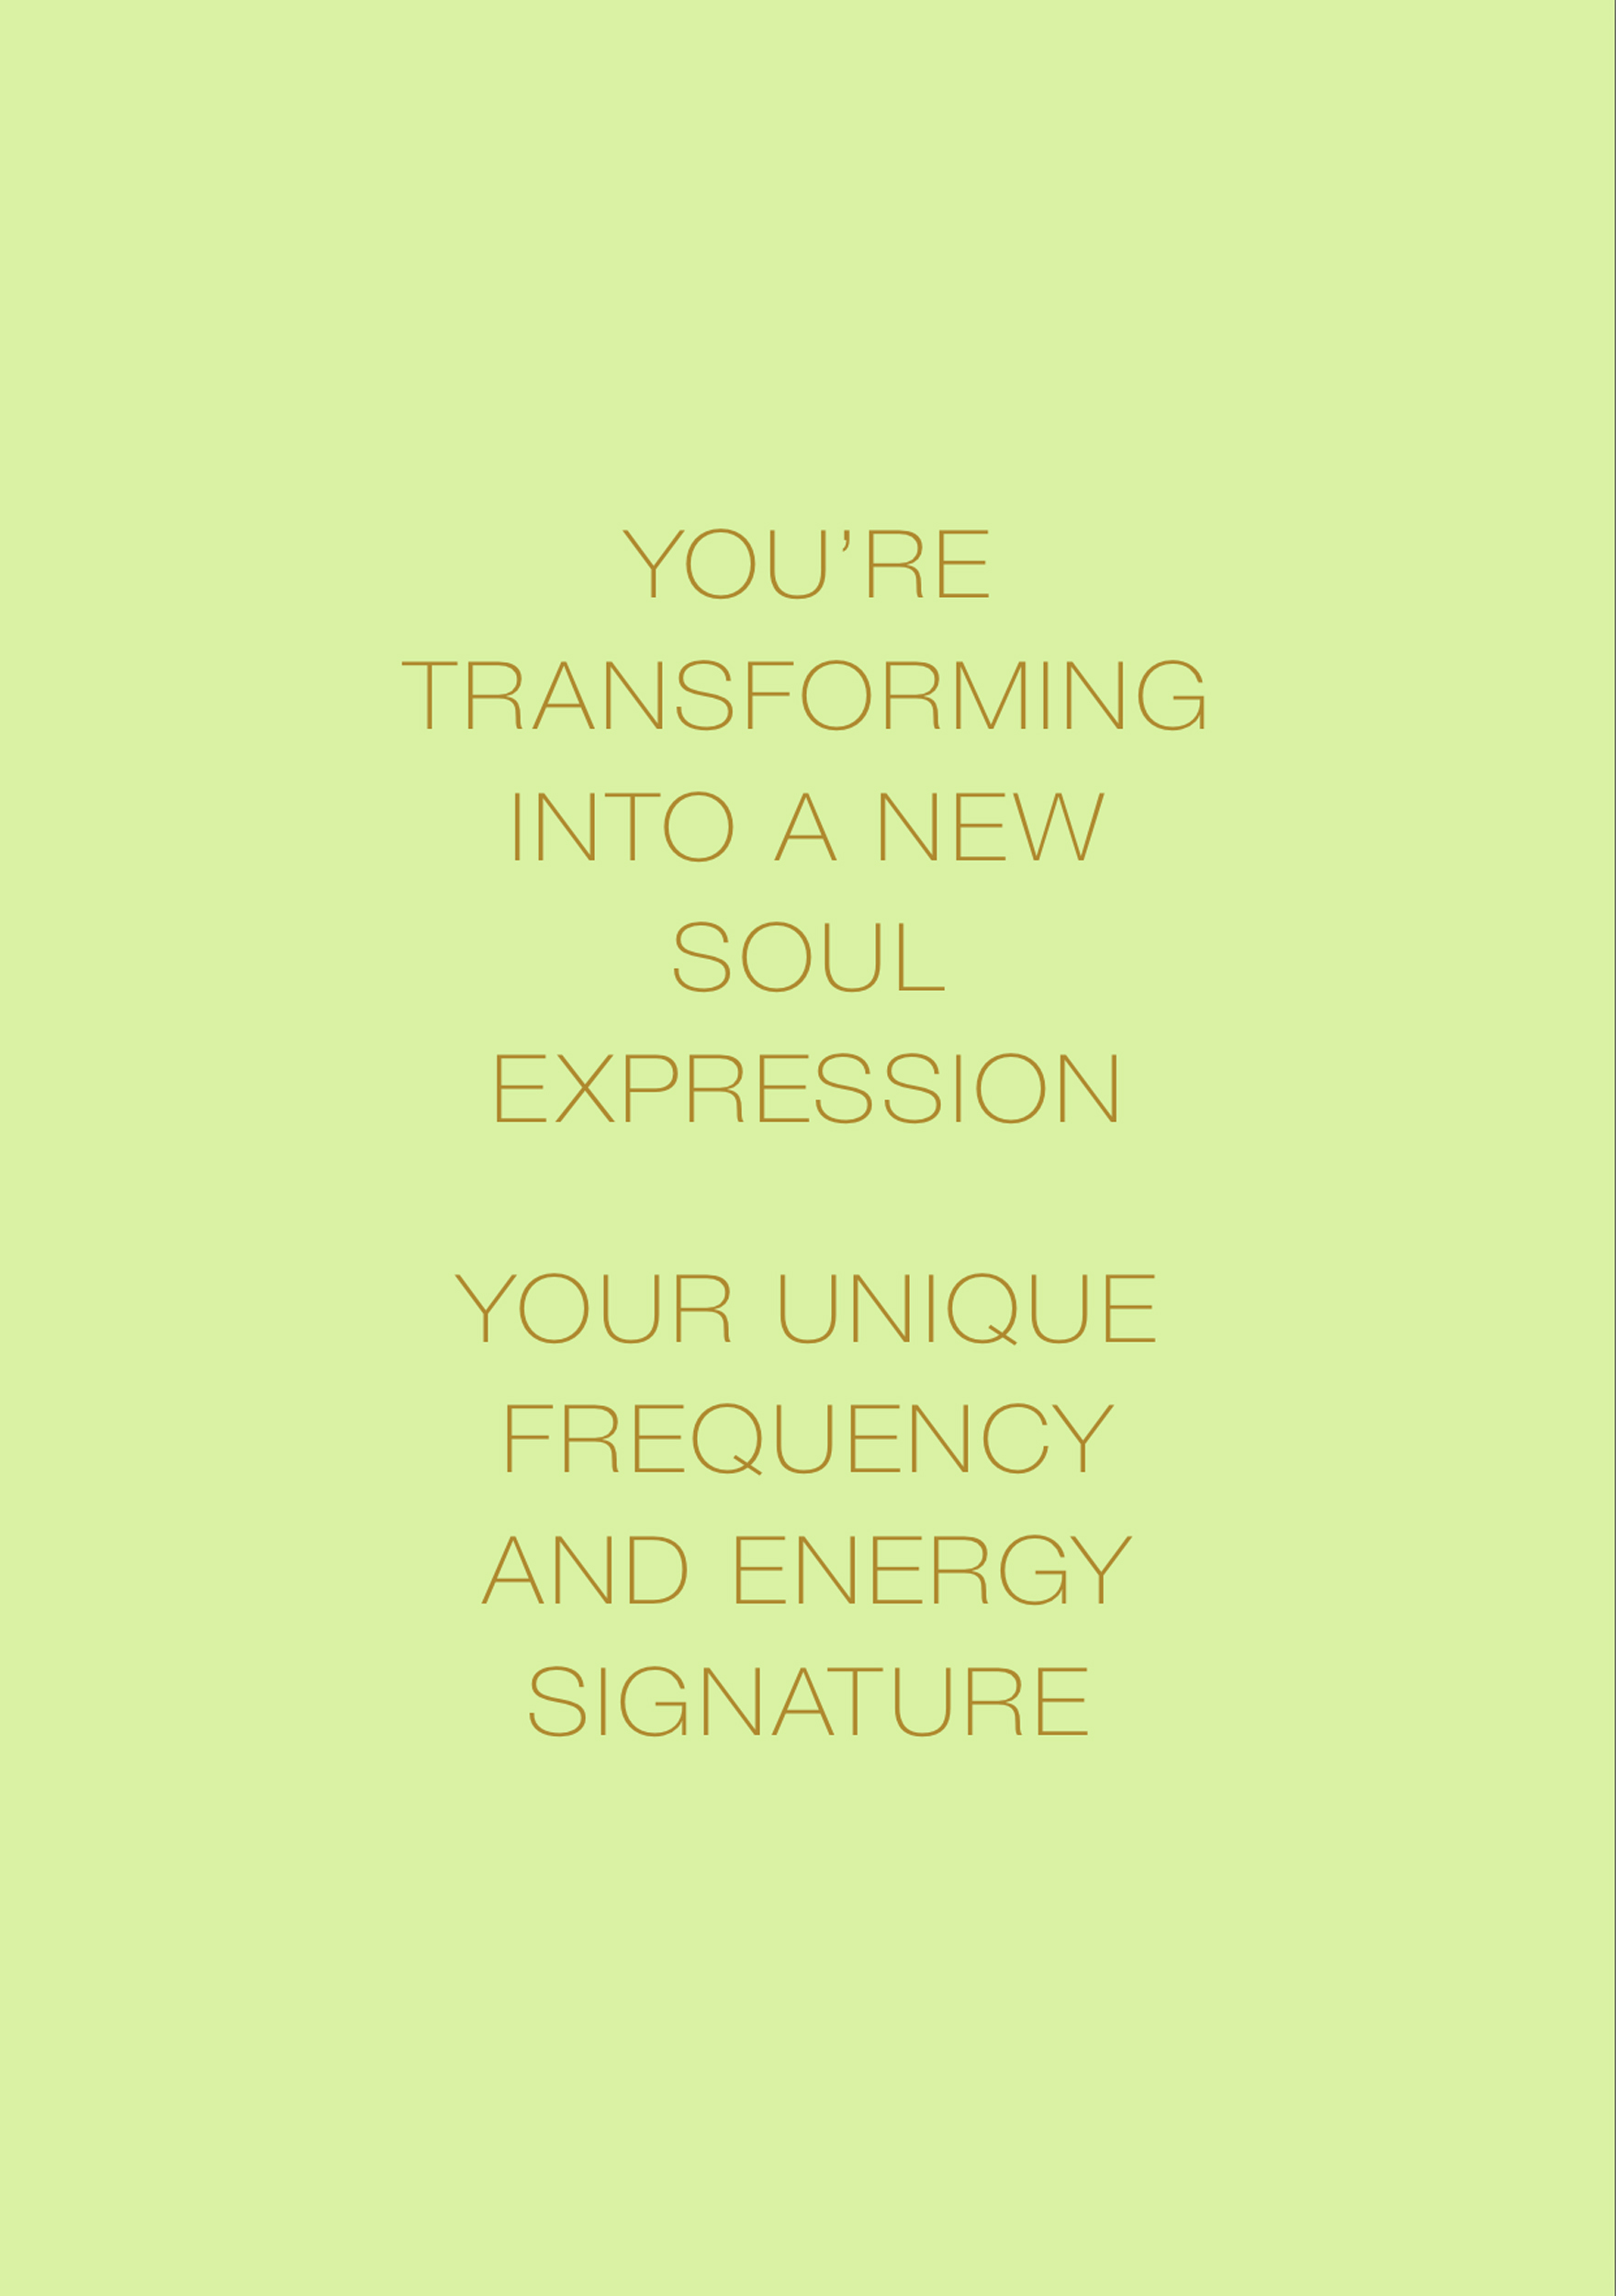 Metamorphosis Mantra: You're Transforming into a New Soul Expression,Your Unique Frequency and Energy Signature